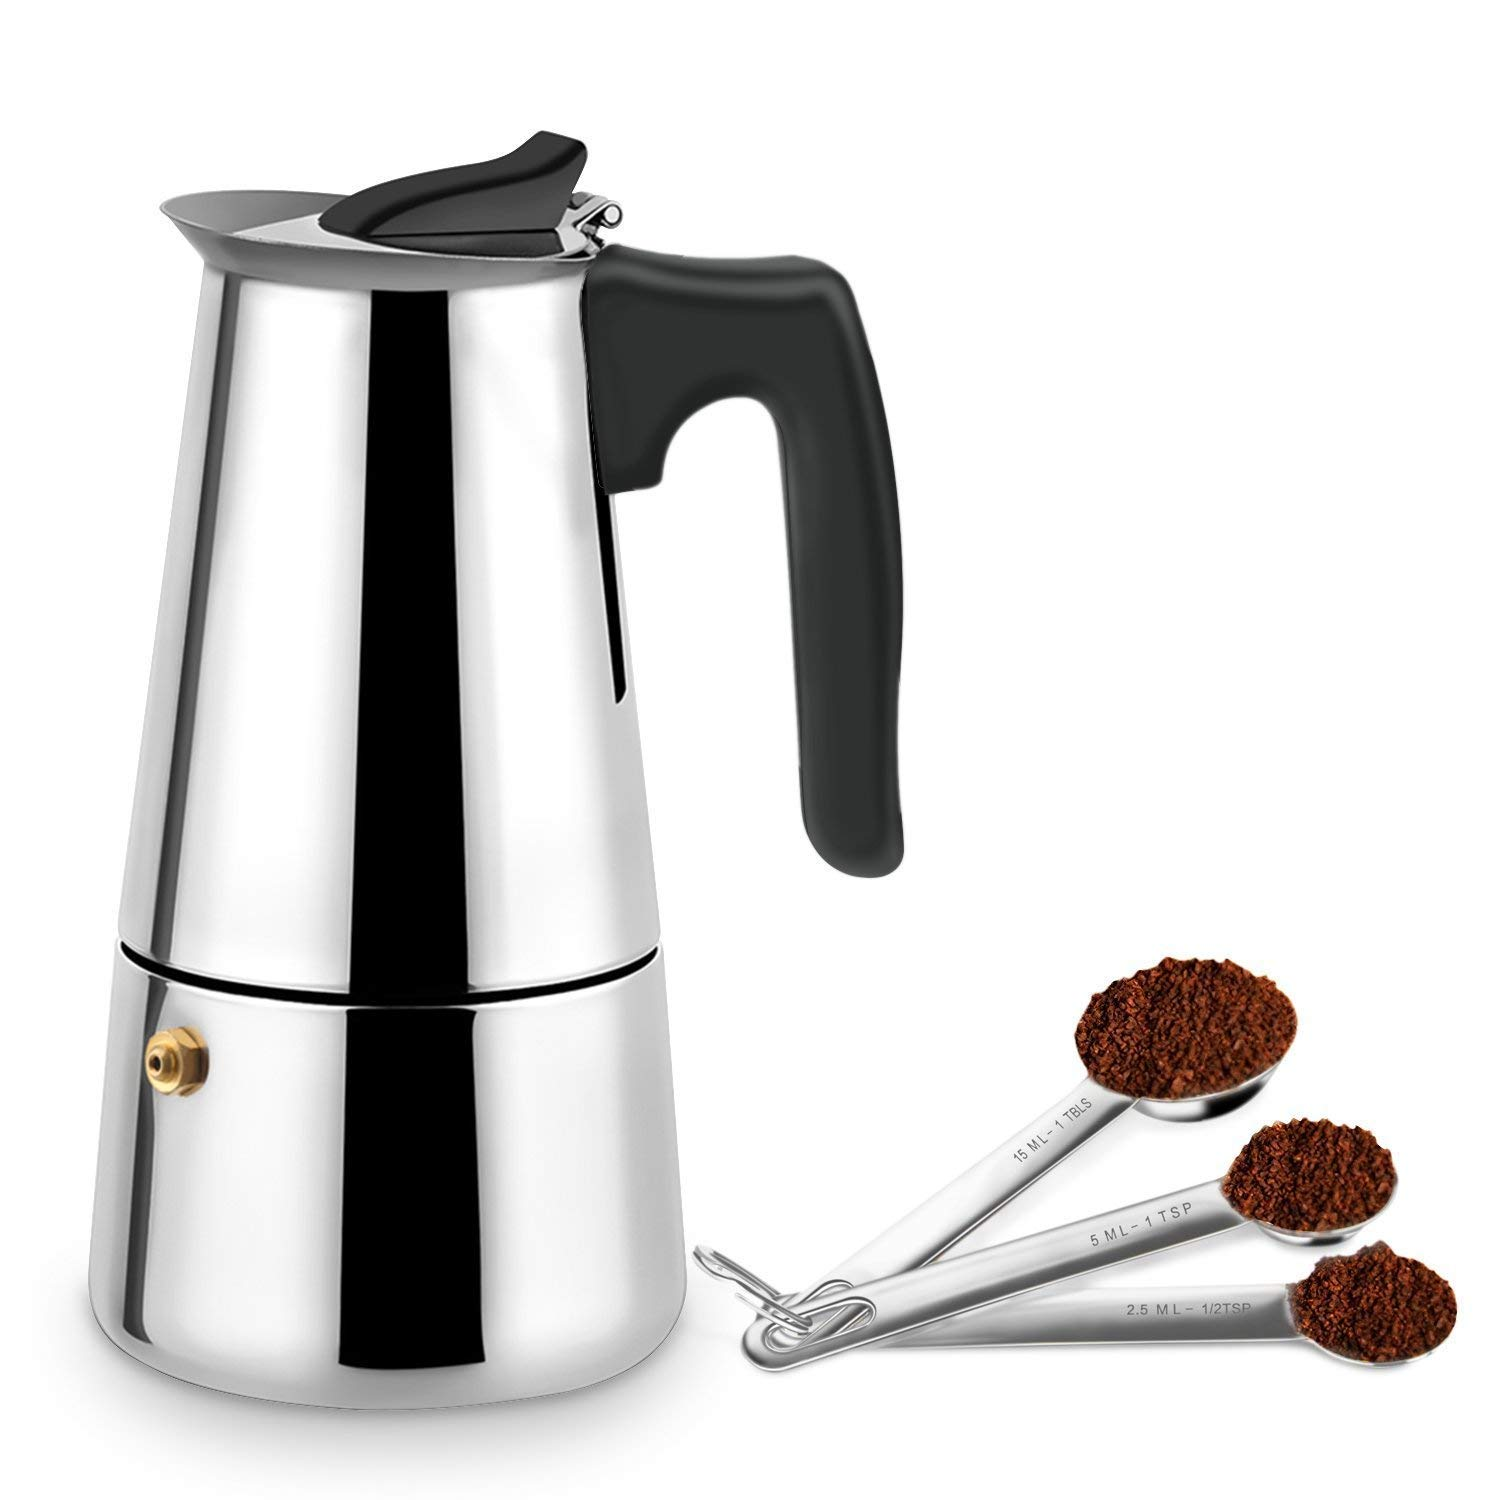 YOULANDA Stovetop Espresso Maker Stainless Steel Moka Pot Italian Coffee Maker 9 Cup, Use for Gas Stove Top CrystalRao